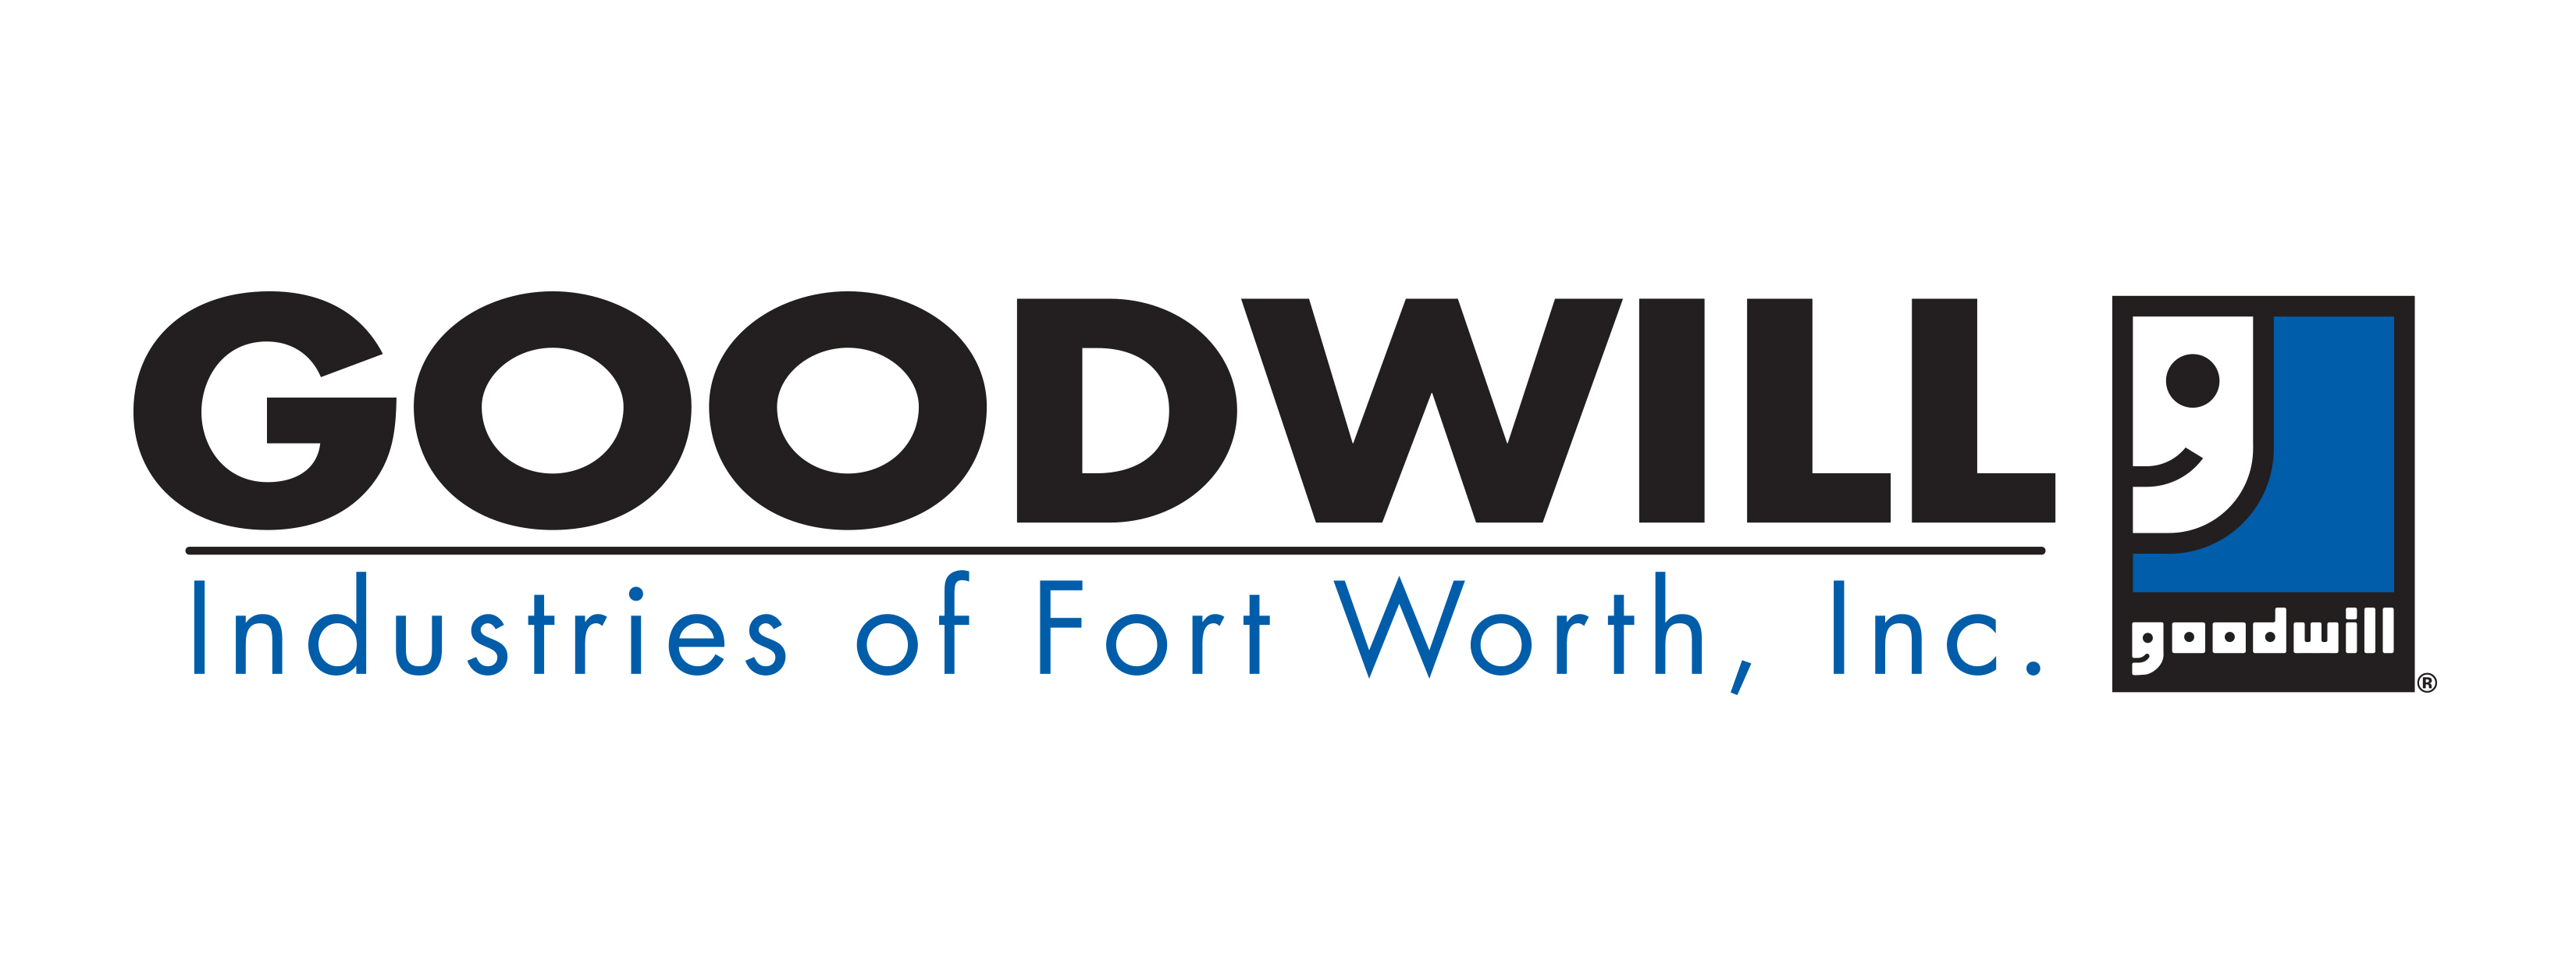 Goodwill Industries Of Fort Worth Inc Guidestar Profile